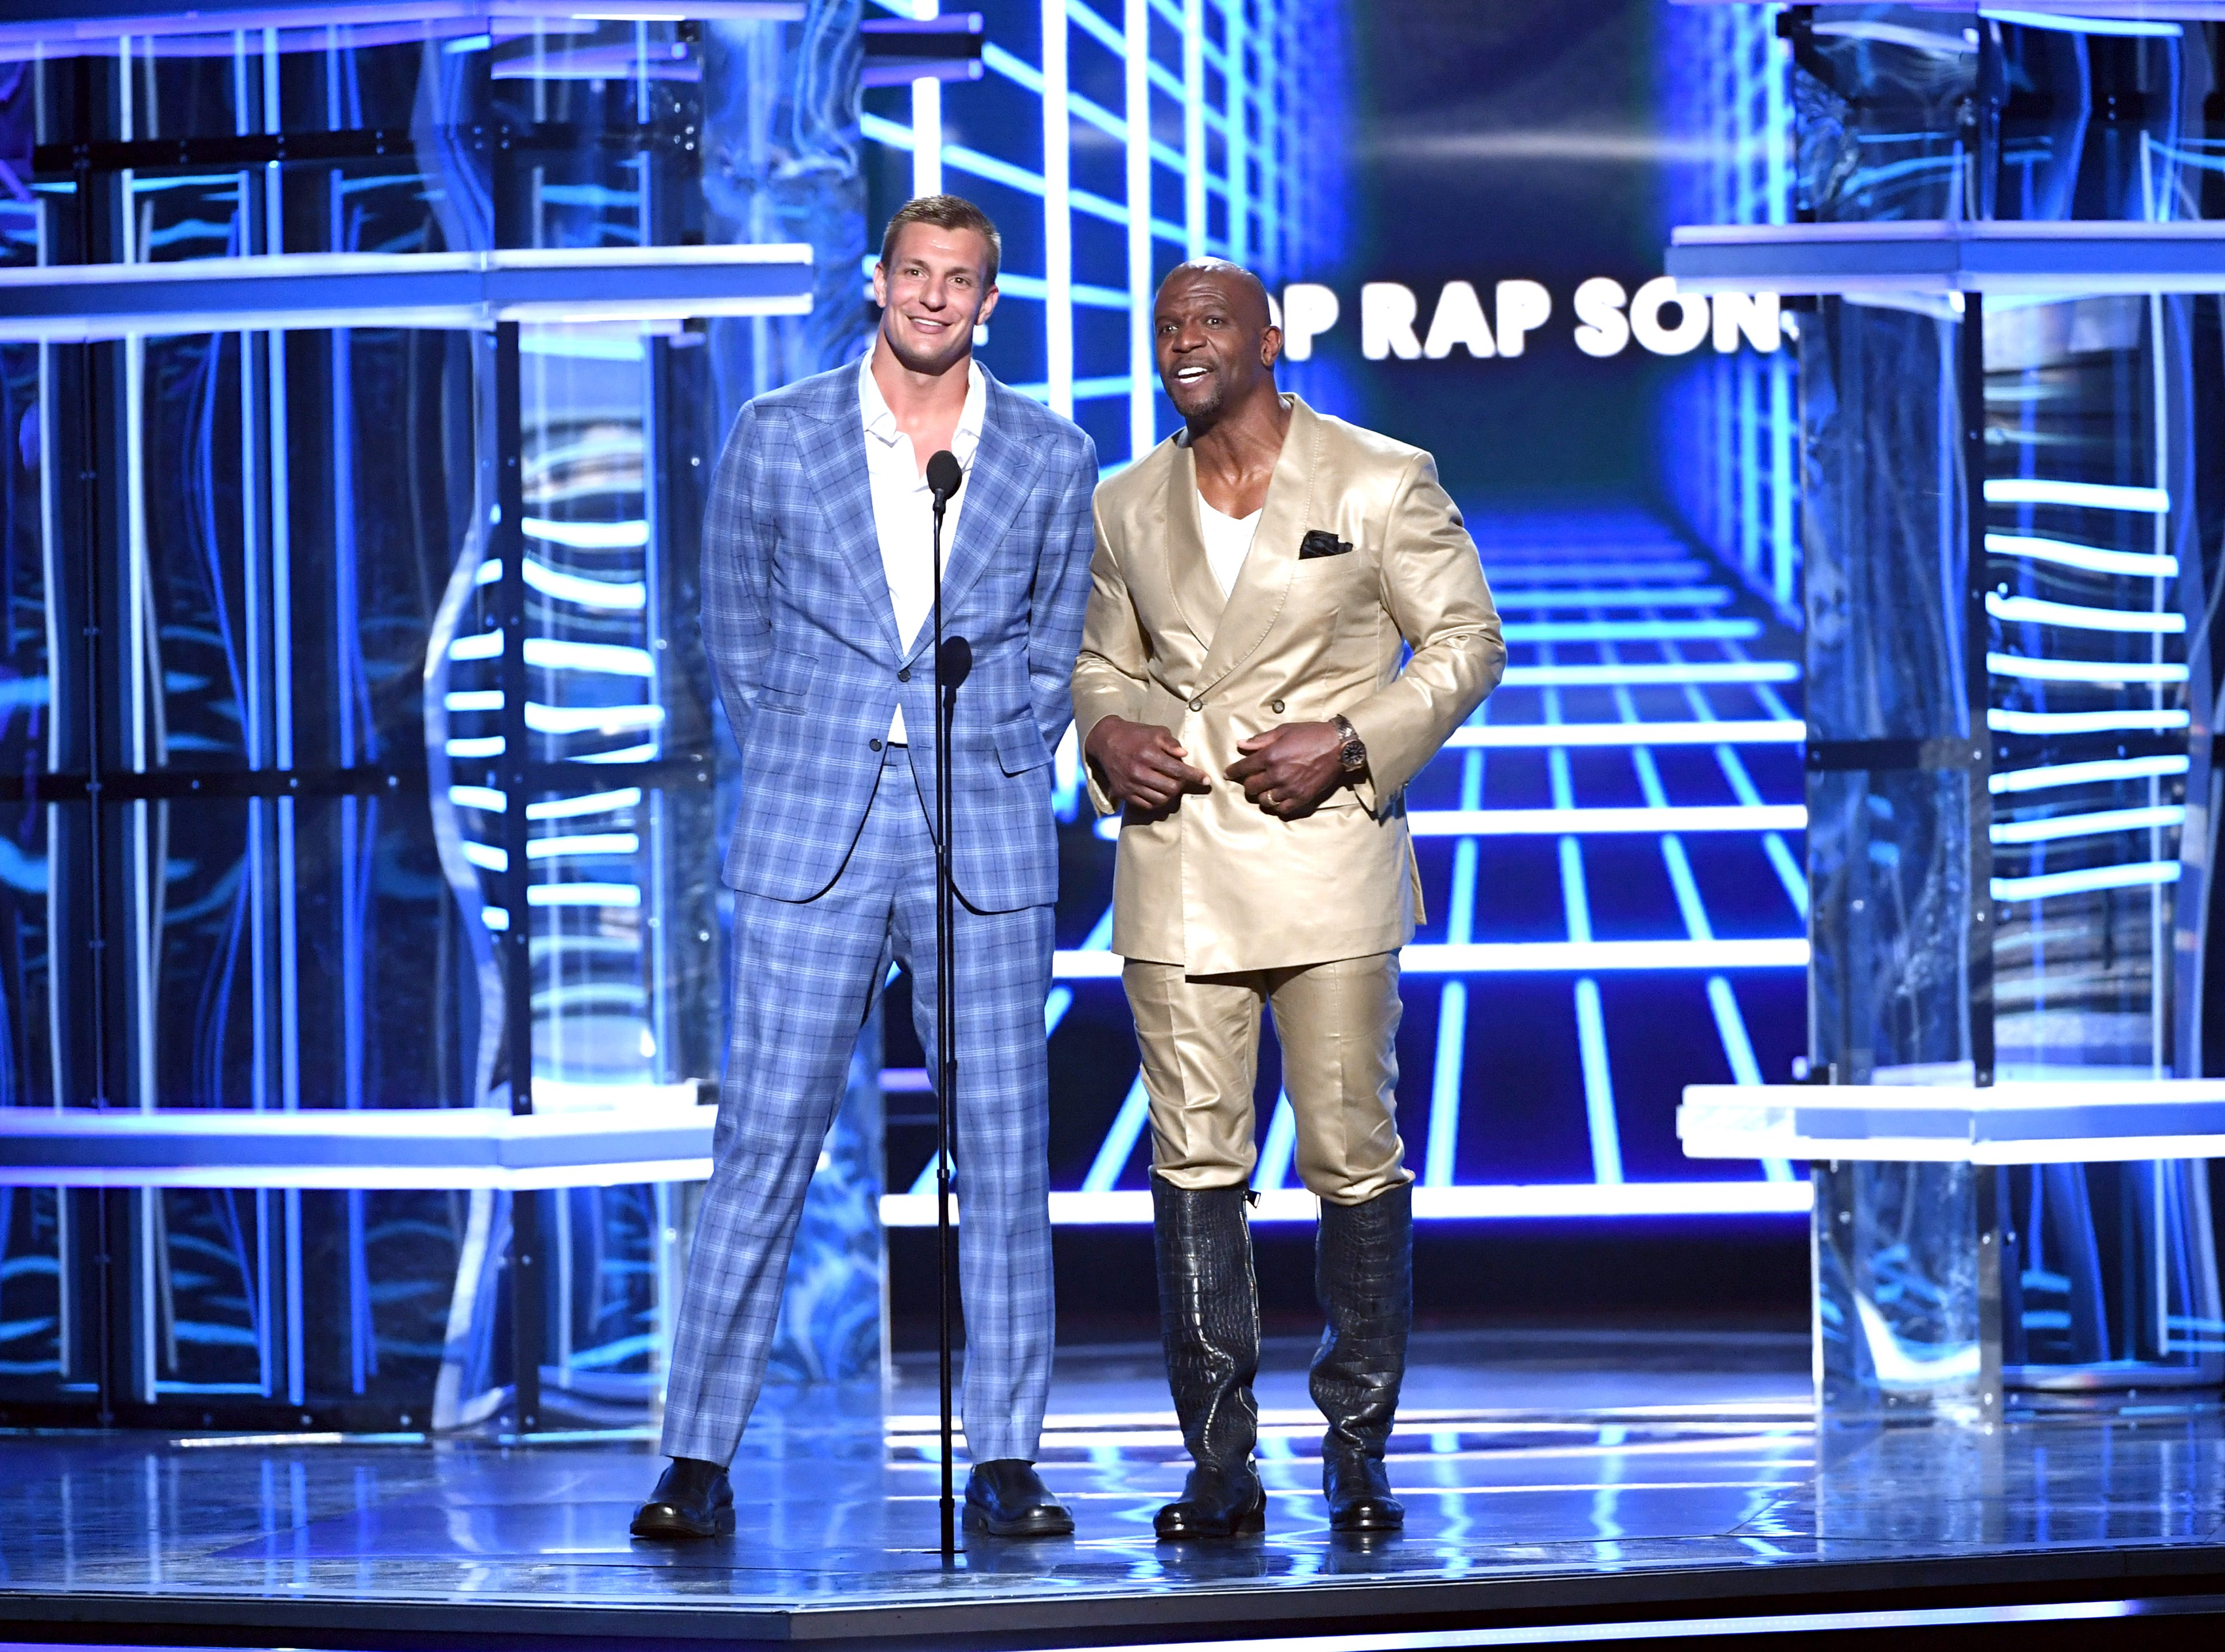 Rob Gronkowski and Terry Crews speak onstage during the 2019 Billboard Music Awards at MGM Grand Garden Arena on May 01, 2019 in Las Vegas, Nevada.